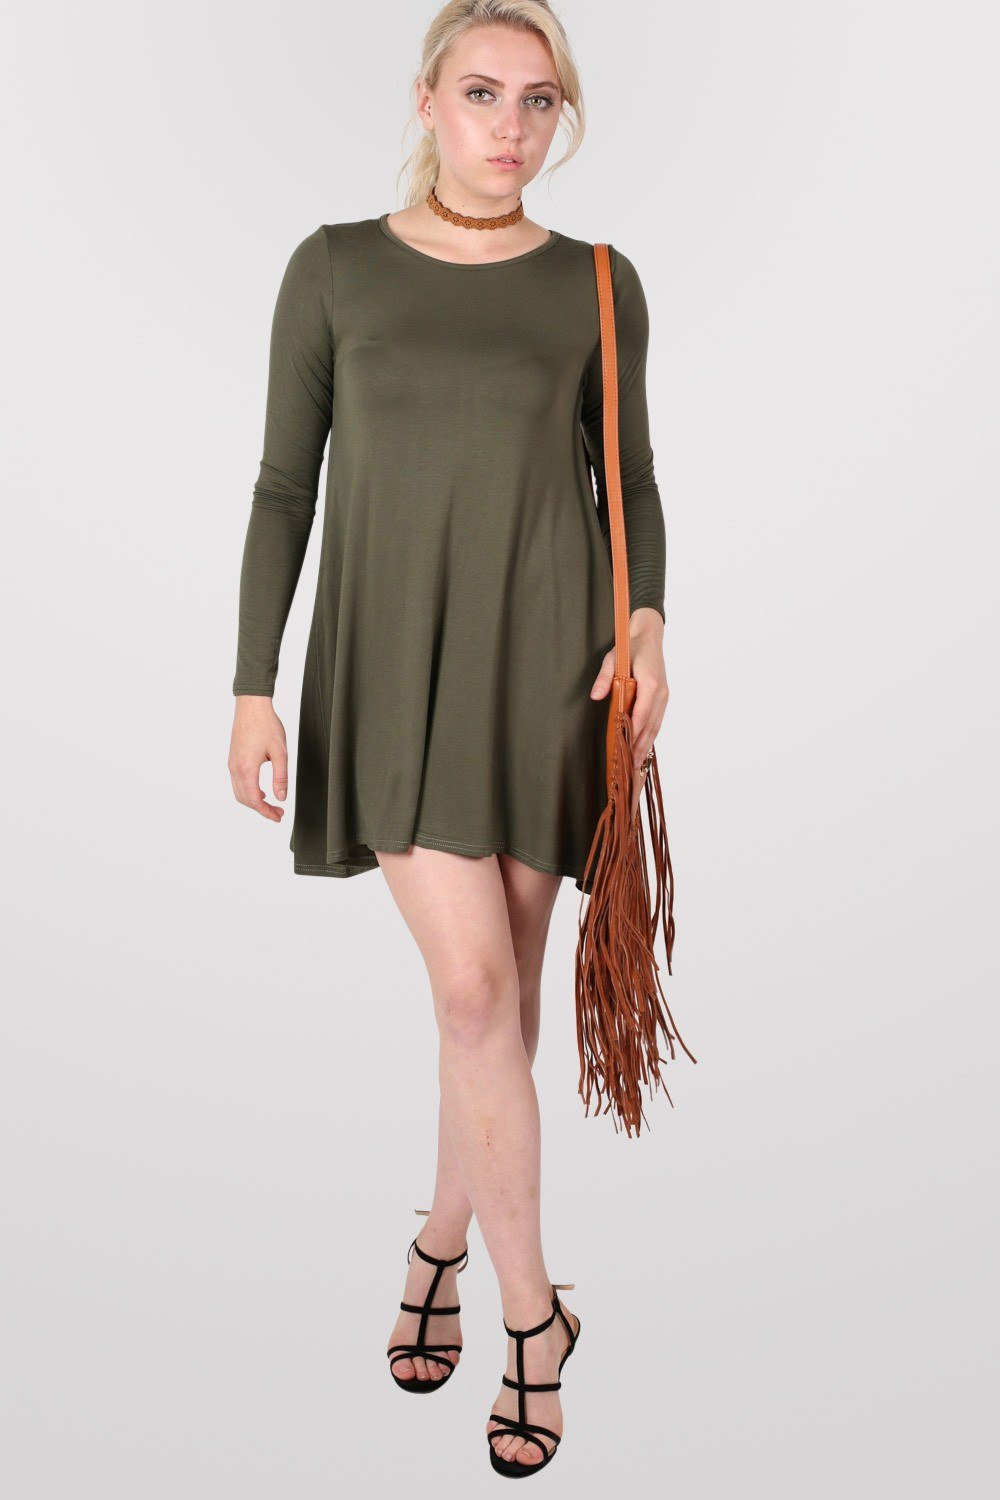 Plain Long Sleeve Swing Dress in Khaki Green 0